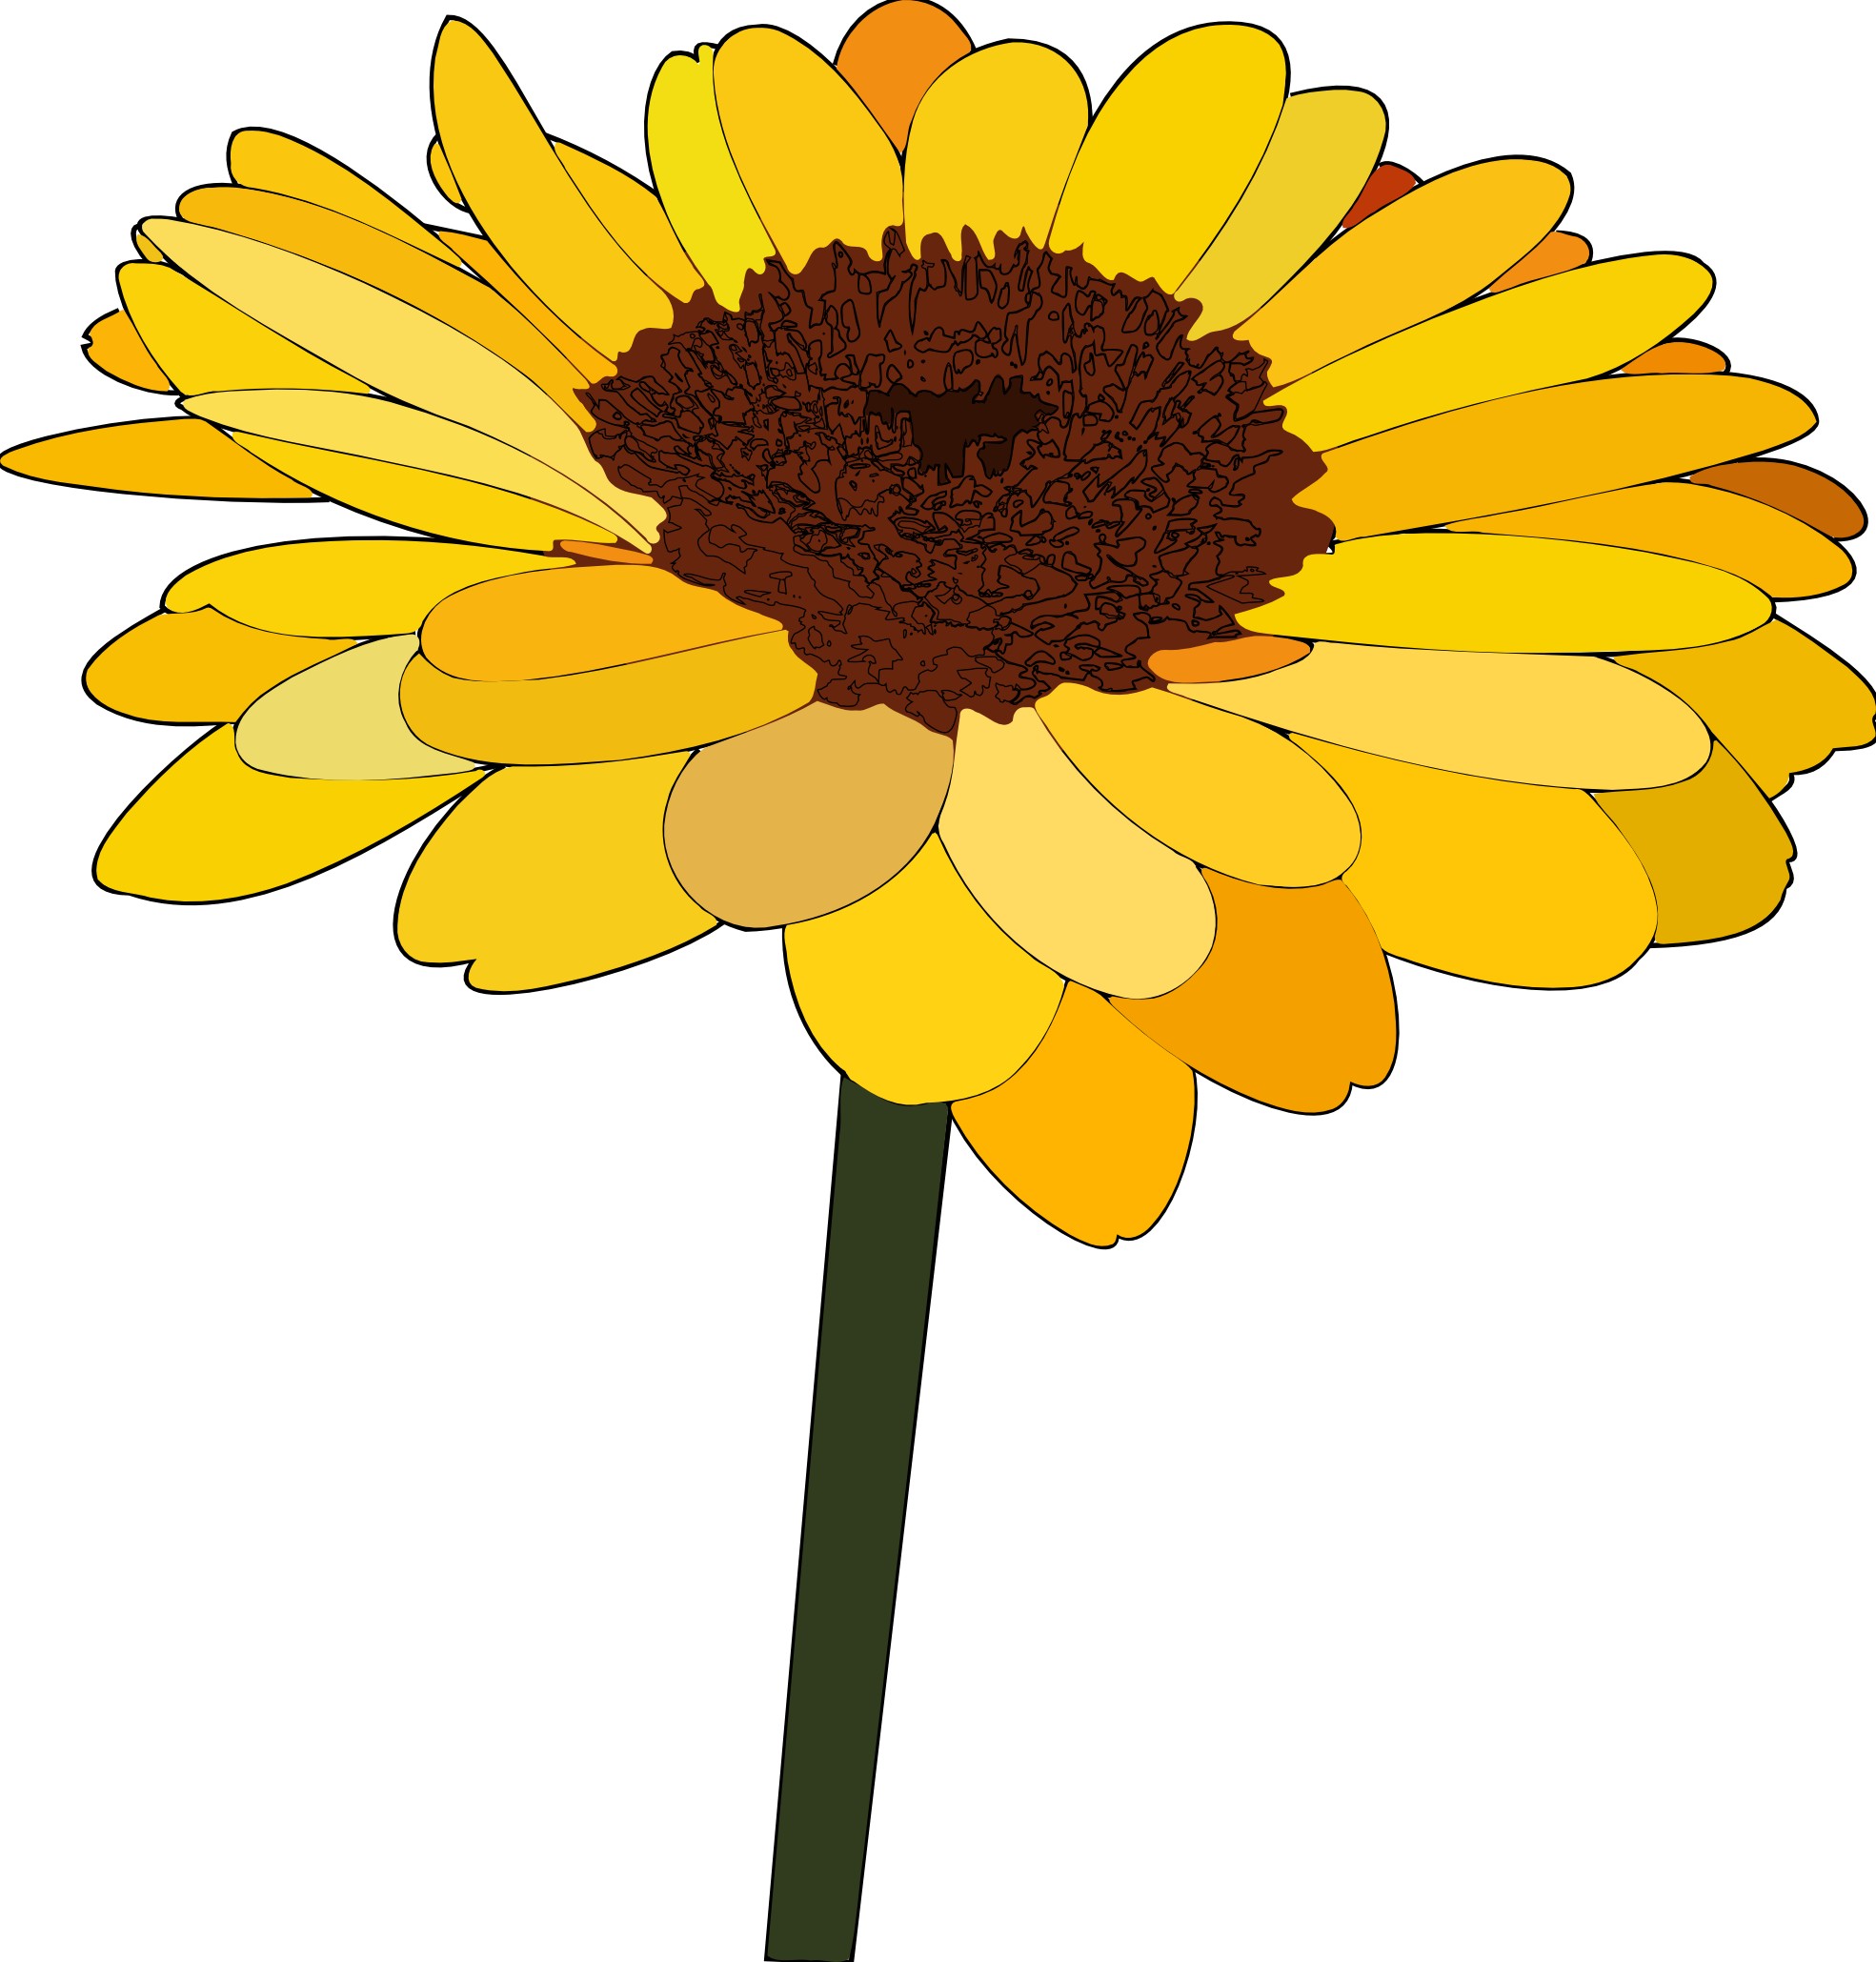 Sunflower Clipart Png Sunflower Clipart